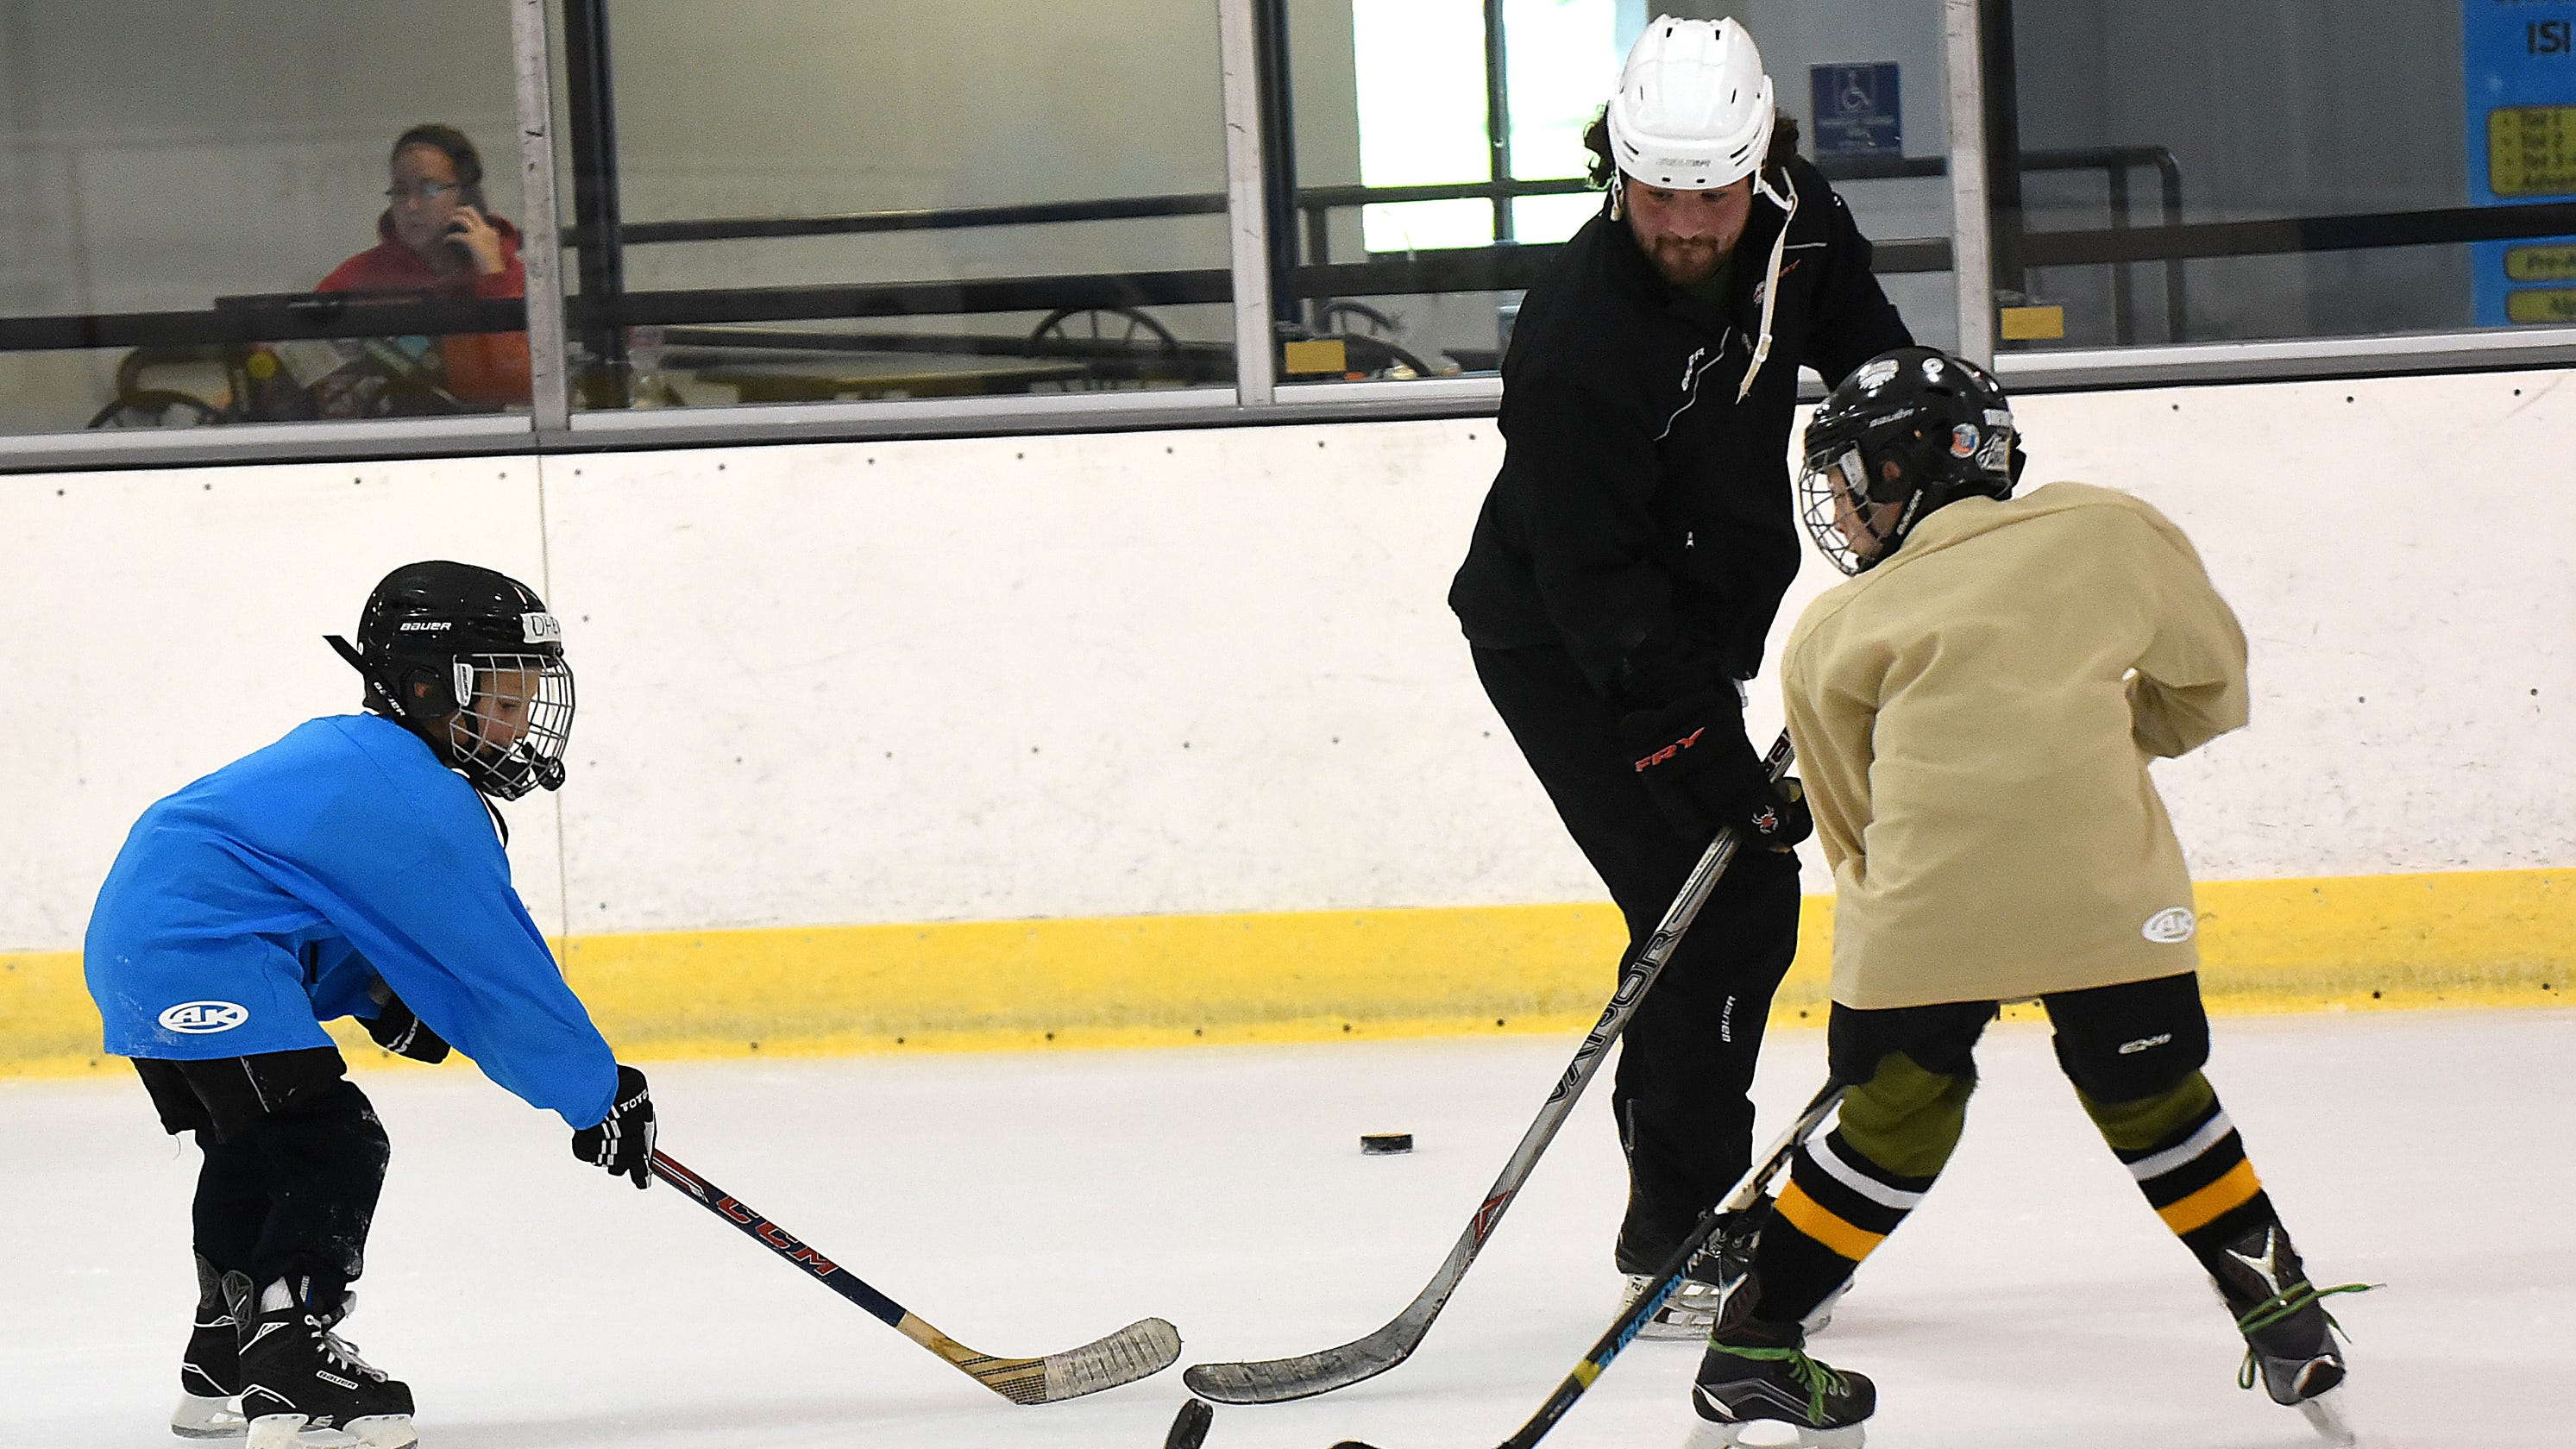 Reese Ice Arena Cools Down Hot Summer Days